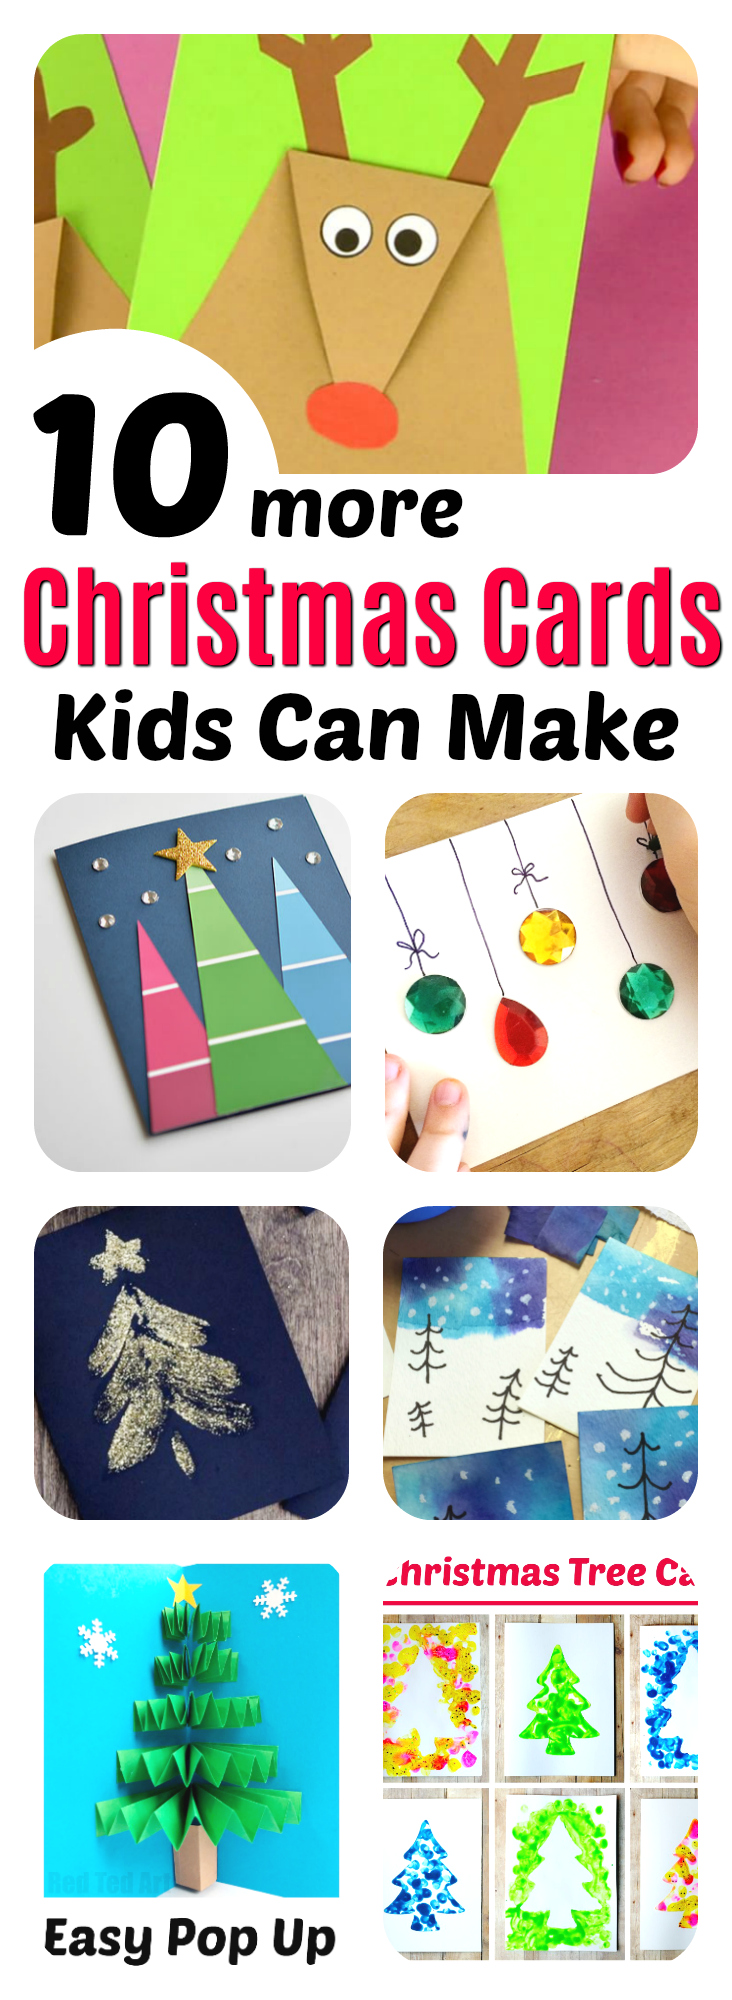 Christmas Cards Kids Can Make: 10 More Ideas!